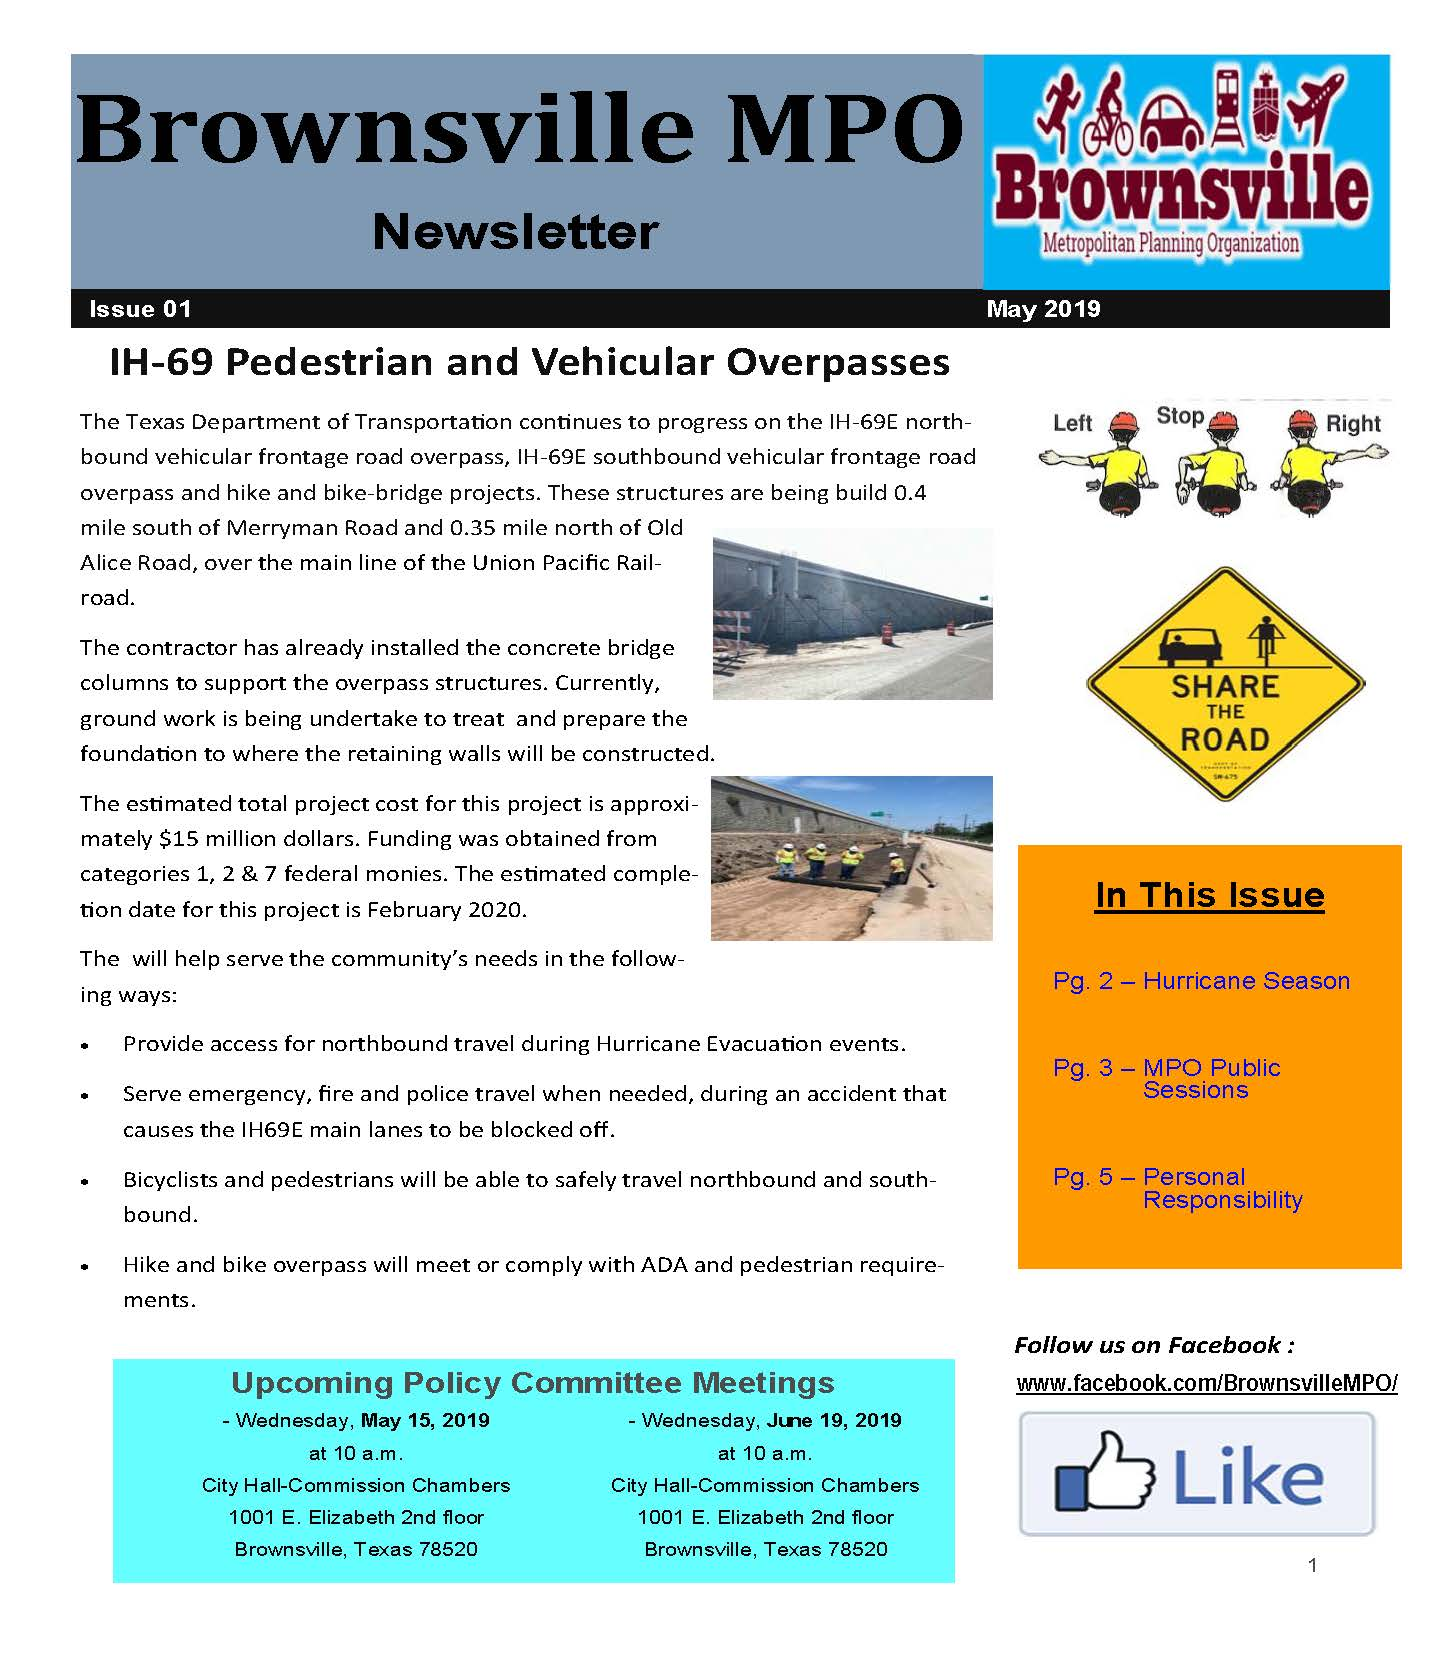 MPO-Newsletter May 2019 (2)_Page_1